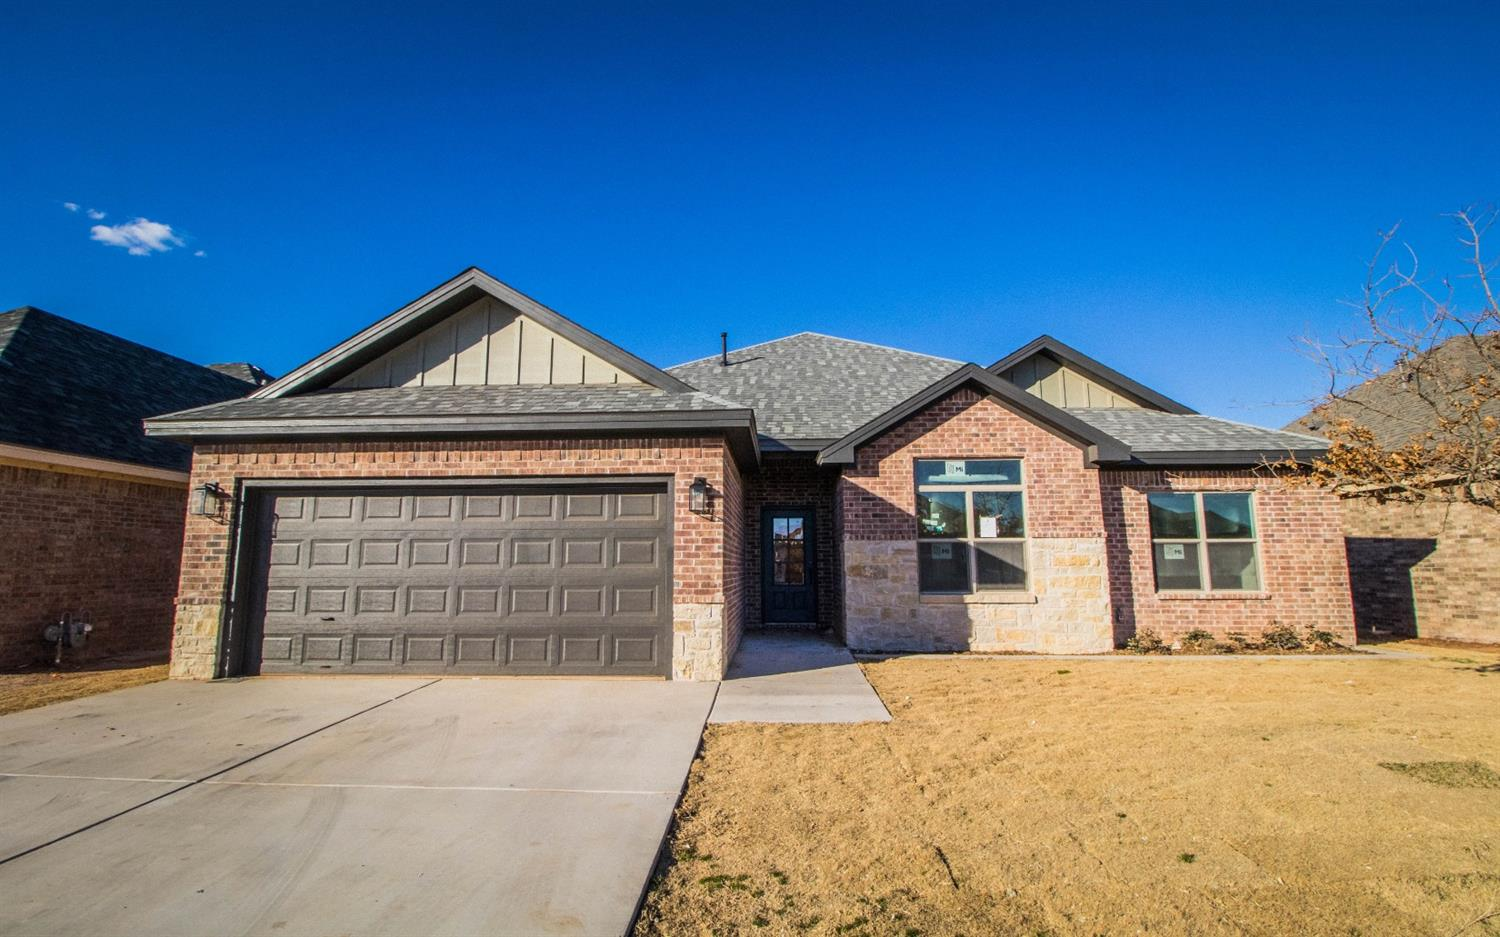 Welcome to this beautifully constructed home by Craig Ray Custom Homes. This spacious three bed, two bath home has everything you want starting with wood tile flooring, granite countertops, and vaulted ceilings. You'll love the attention to detail and design with this home.